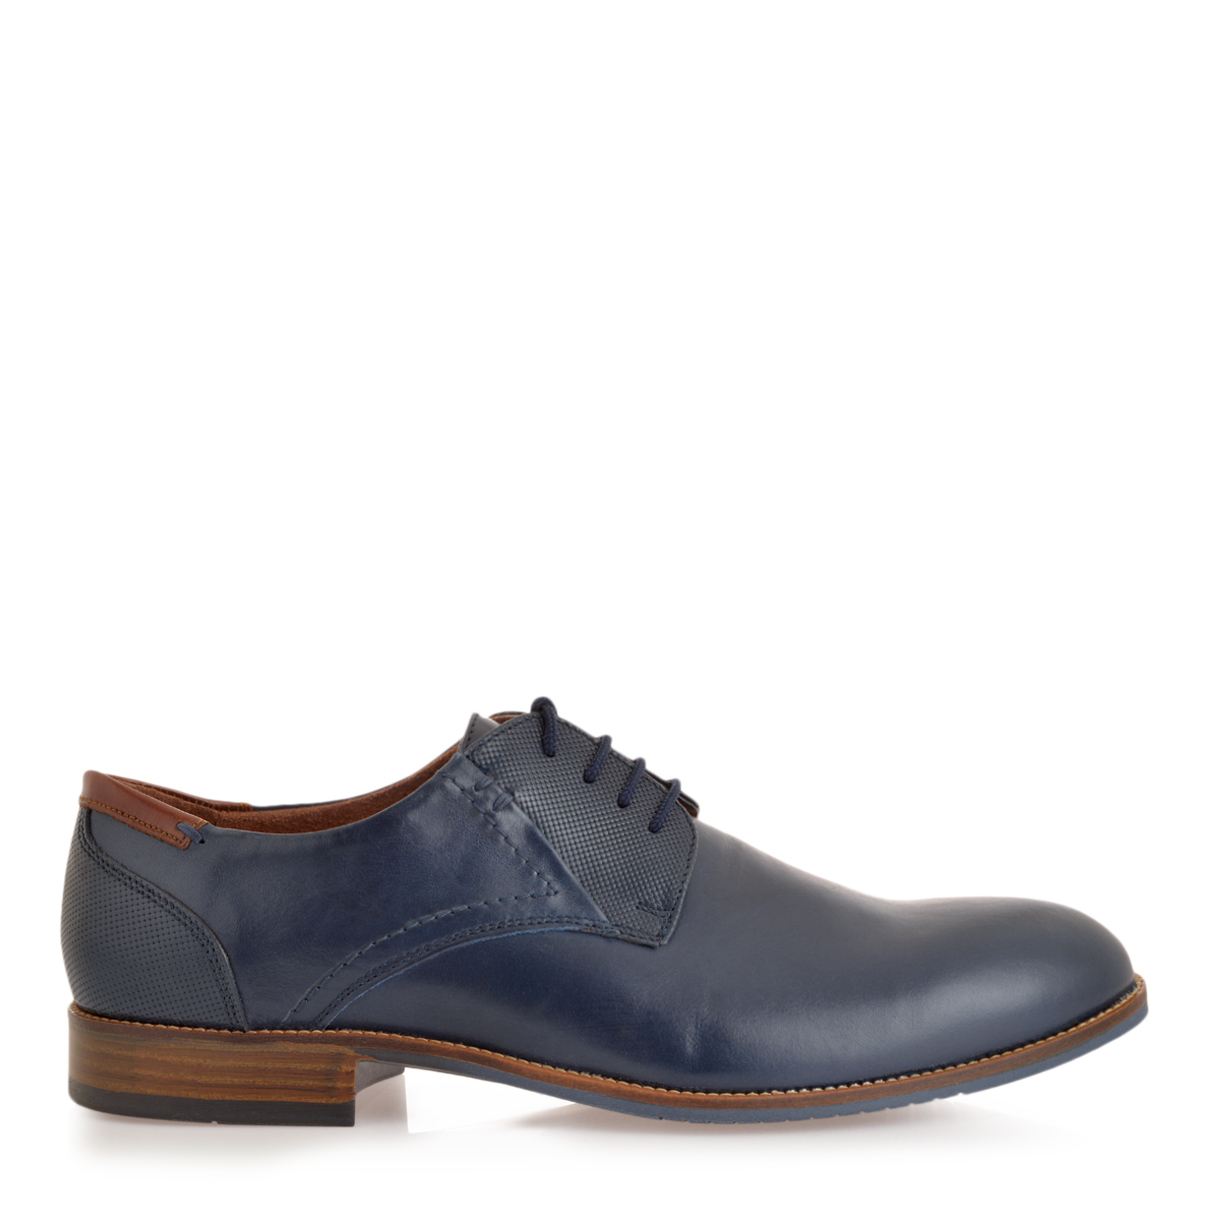 LACE-UP SHOES σχέδιο: G544L2401 outlet   ανδρικα   lace up shoes